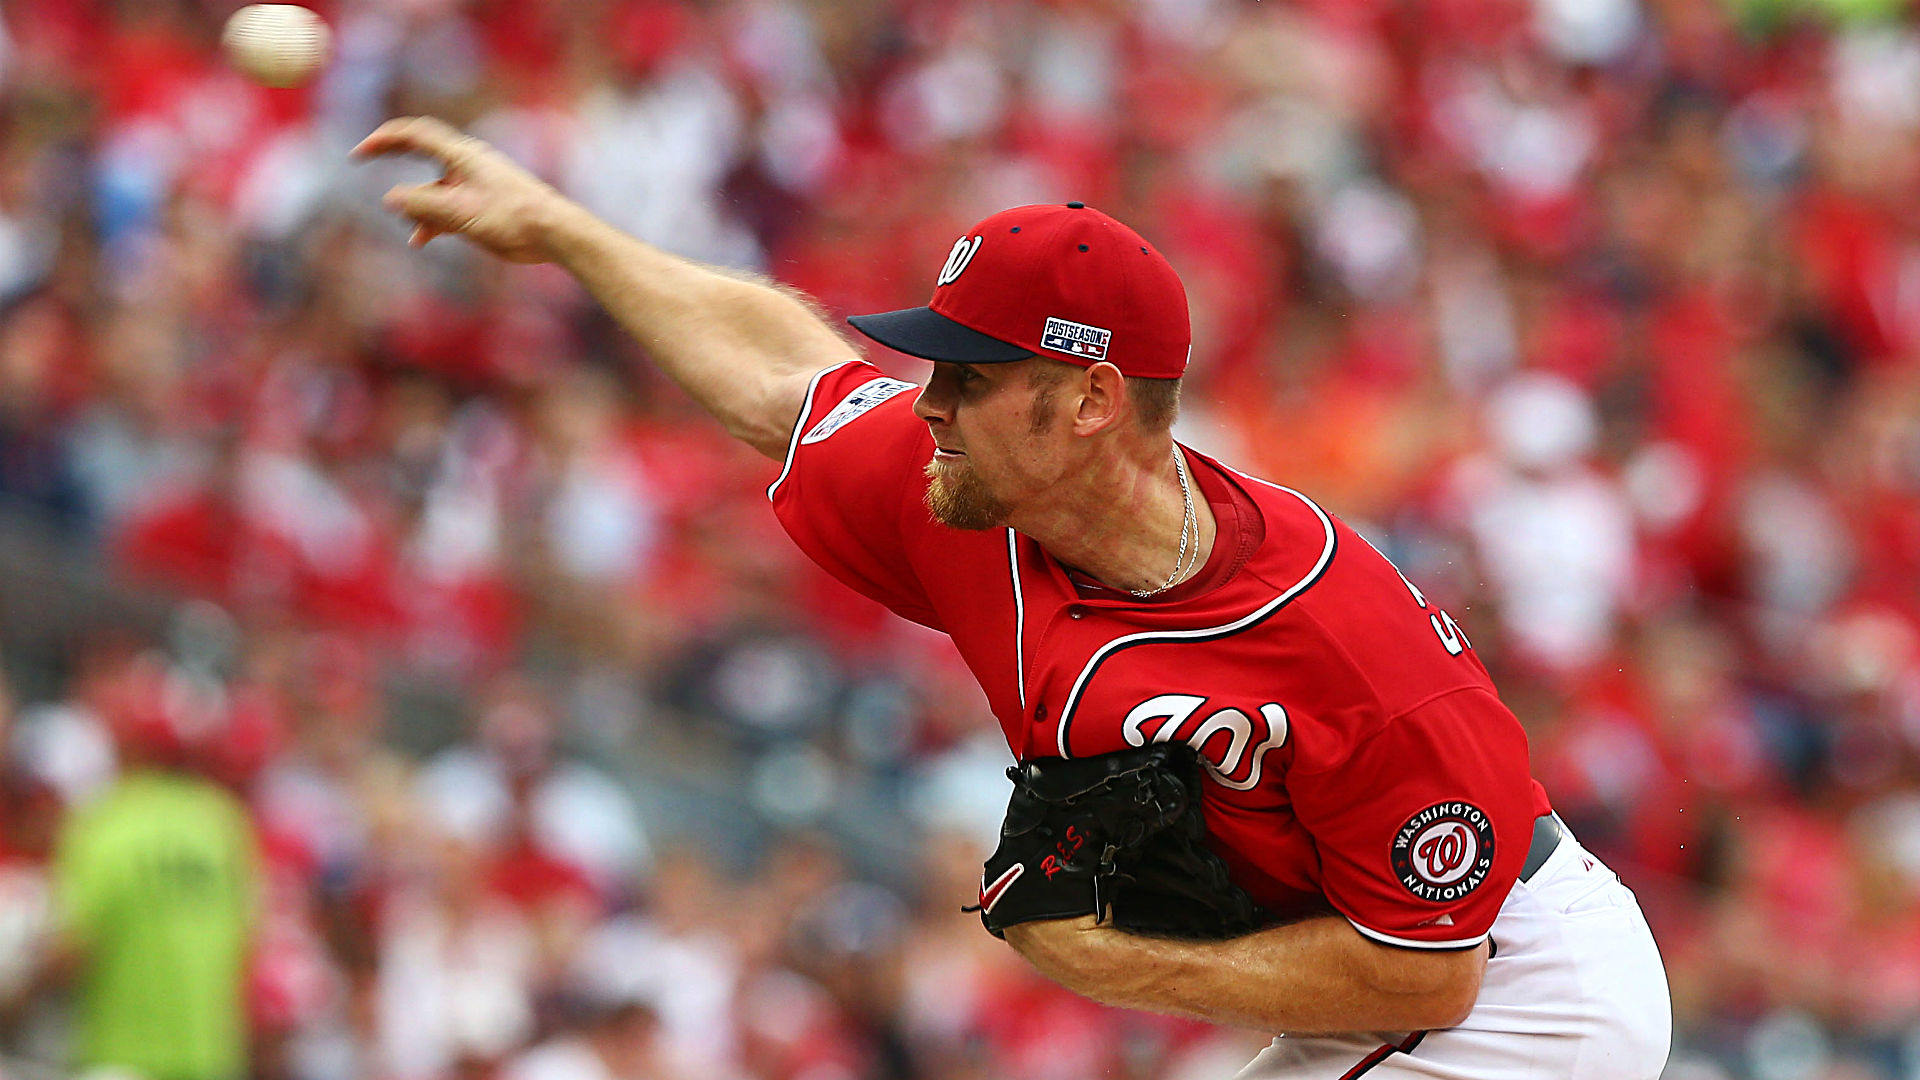 Stephen Strasburg injured again, exits start early